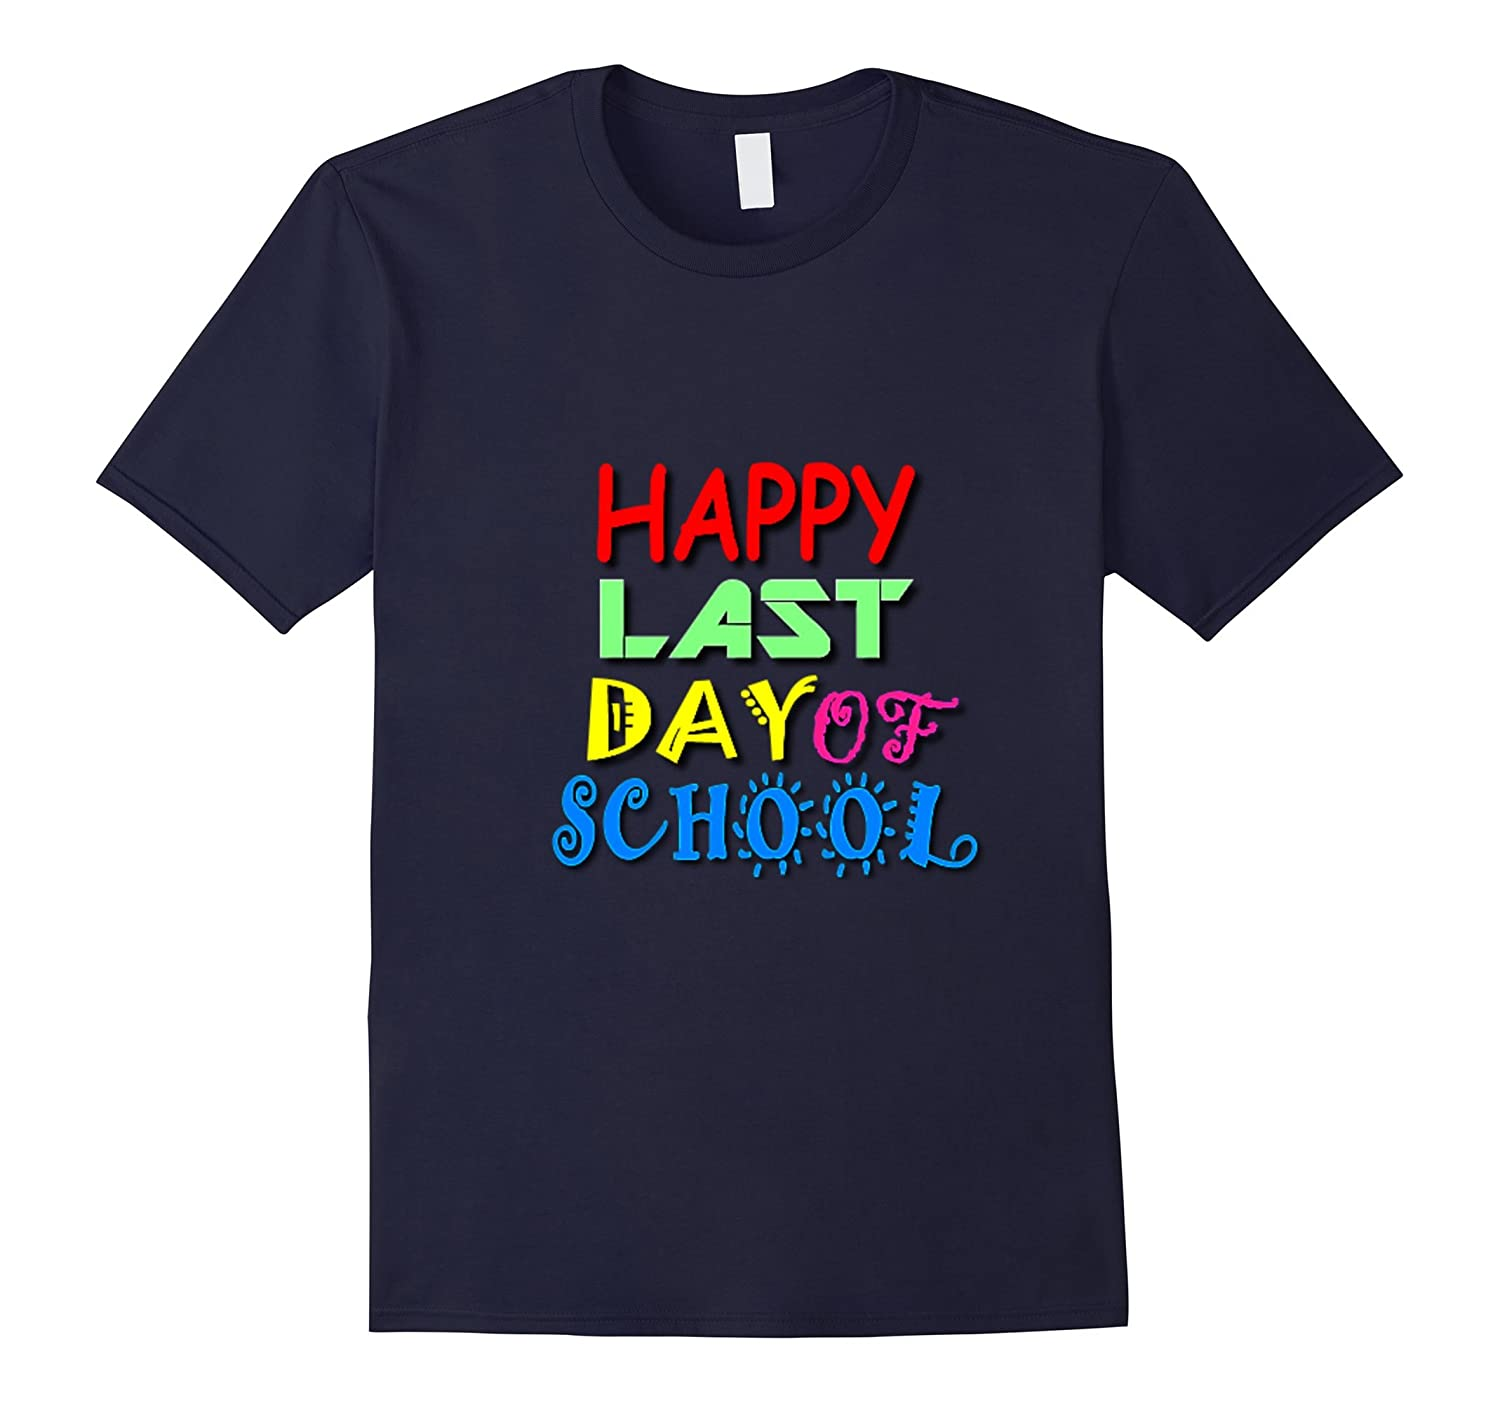 Happy Last Day Of School Shirt For Teachers And Students-Vaci